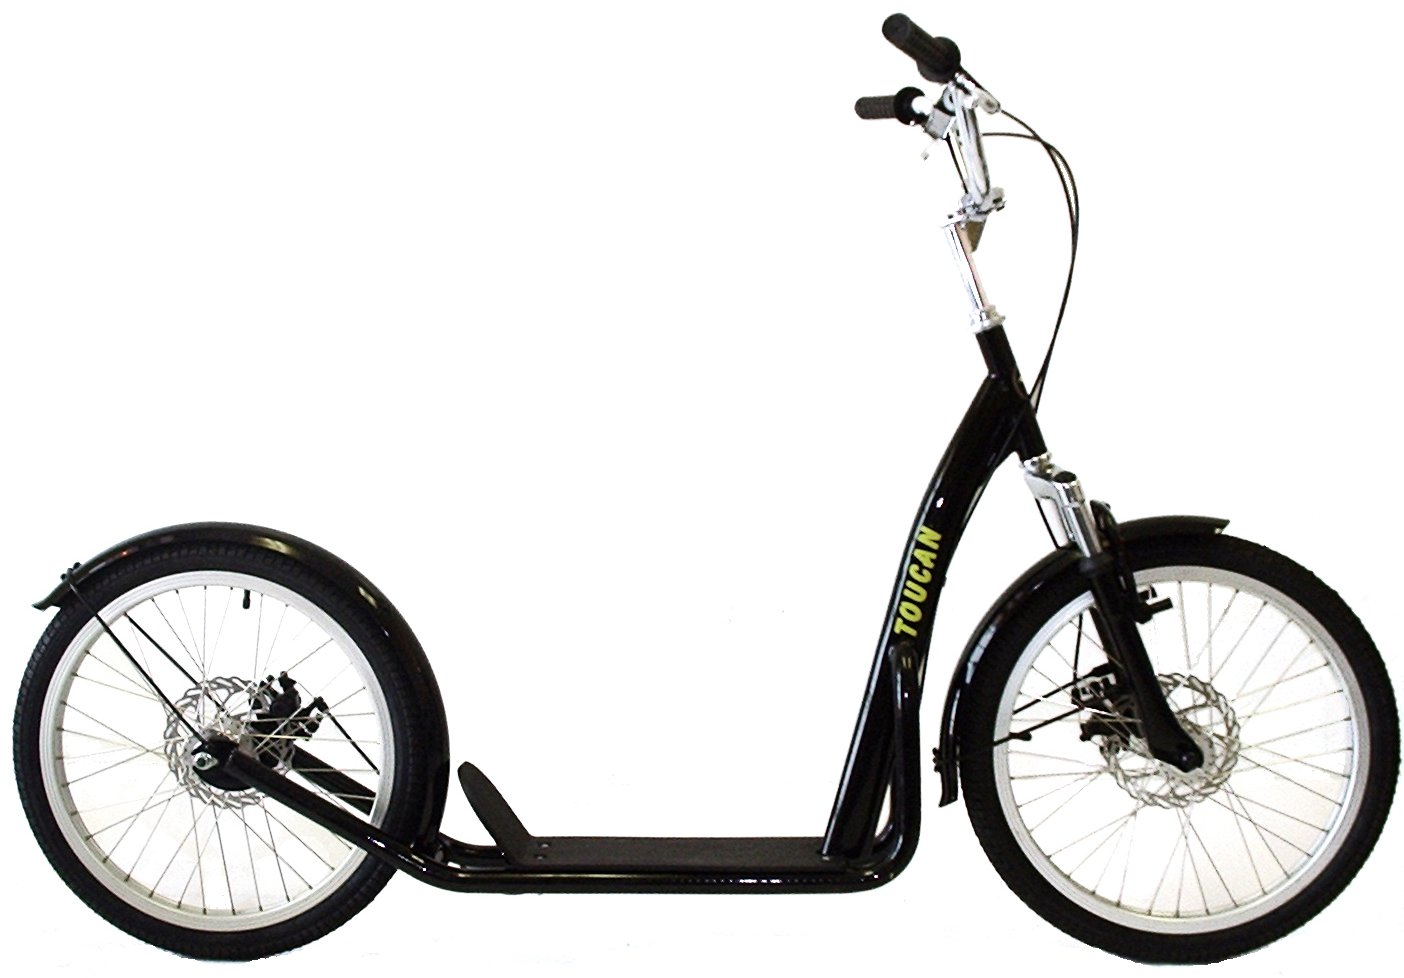 Toucan 20 Suspension Kick Bike Scooter